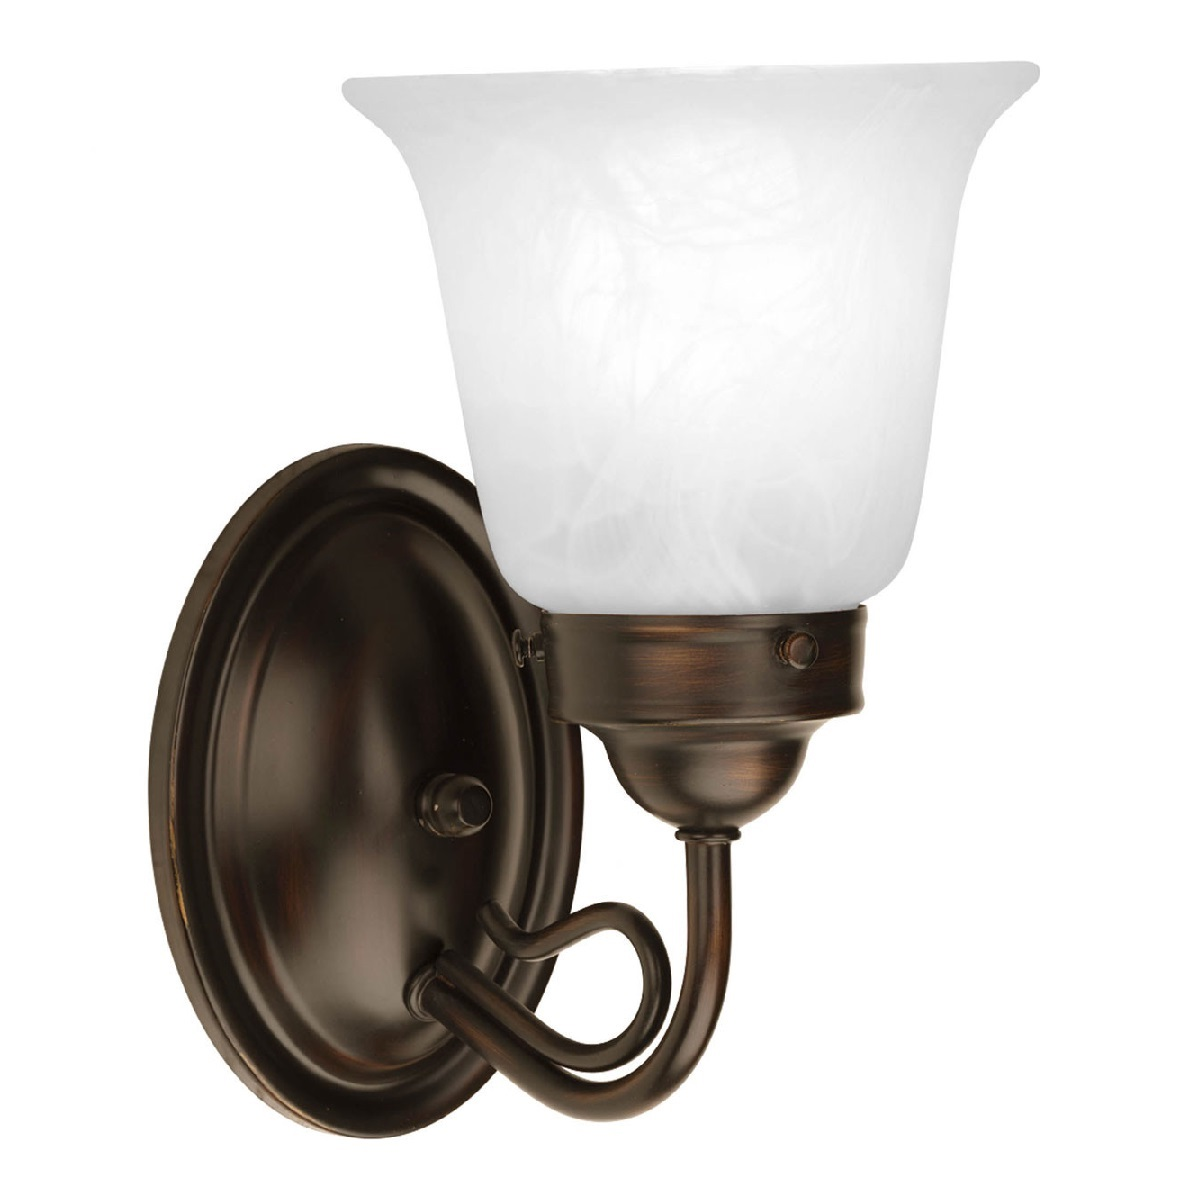 Antique Bathroom Vanity Lights : Progress Lighting Bedford 1 Light Bath Vanity Light In Antique Bronze l Brilliant Source Lighting